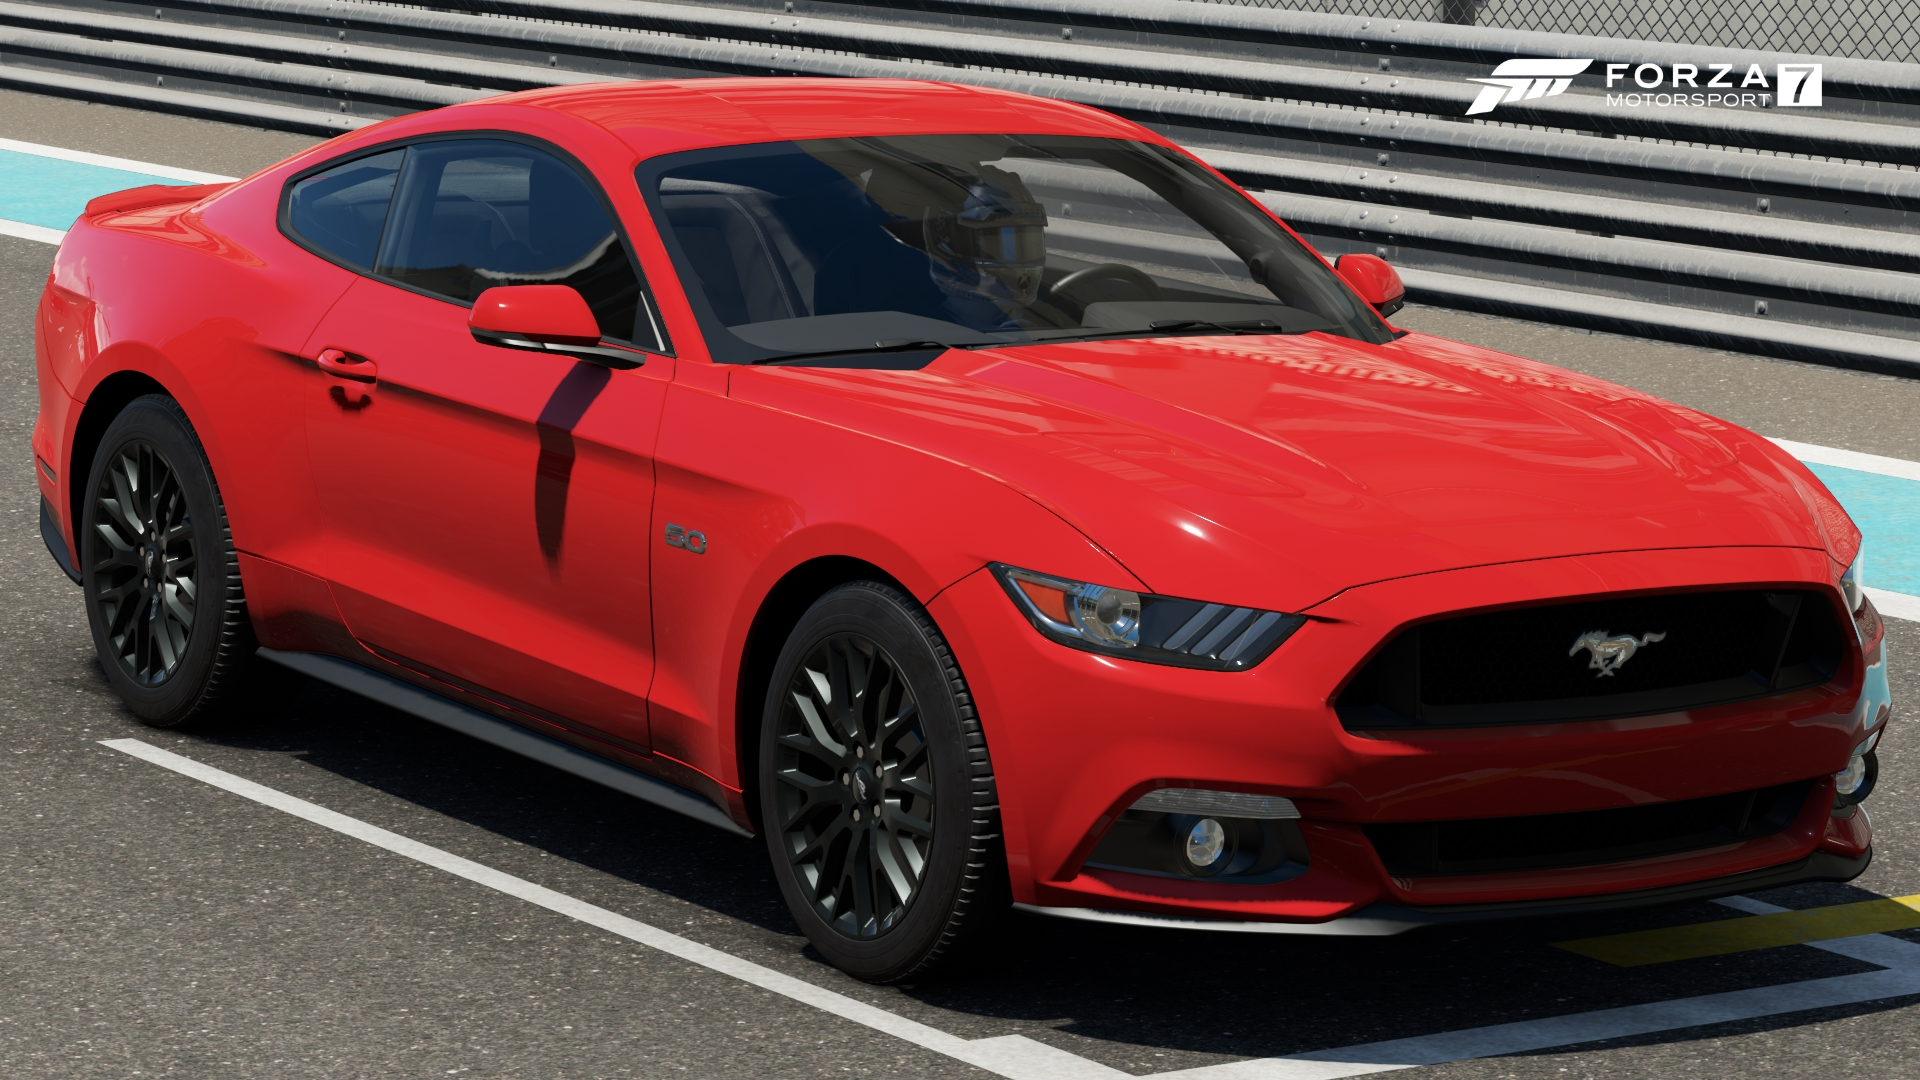 Ford mustang gt in forza motorsport 7